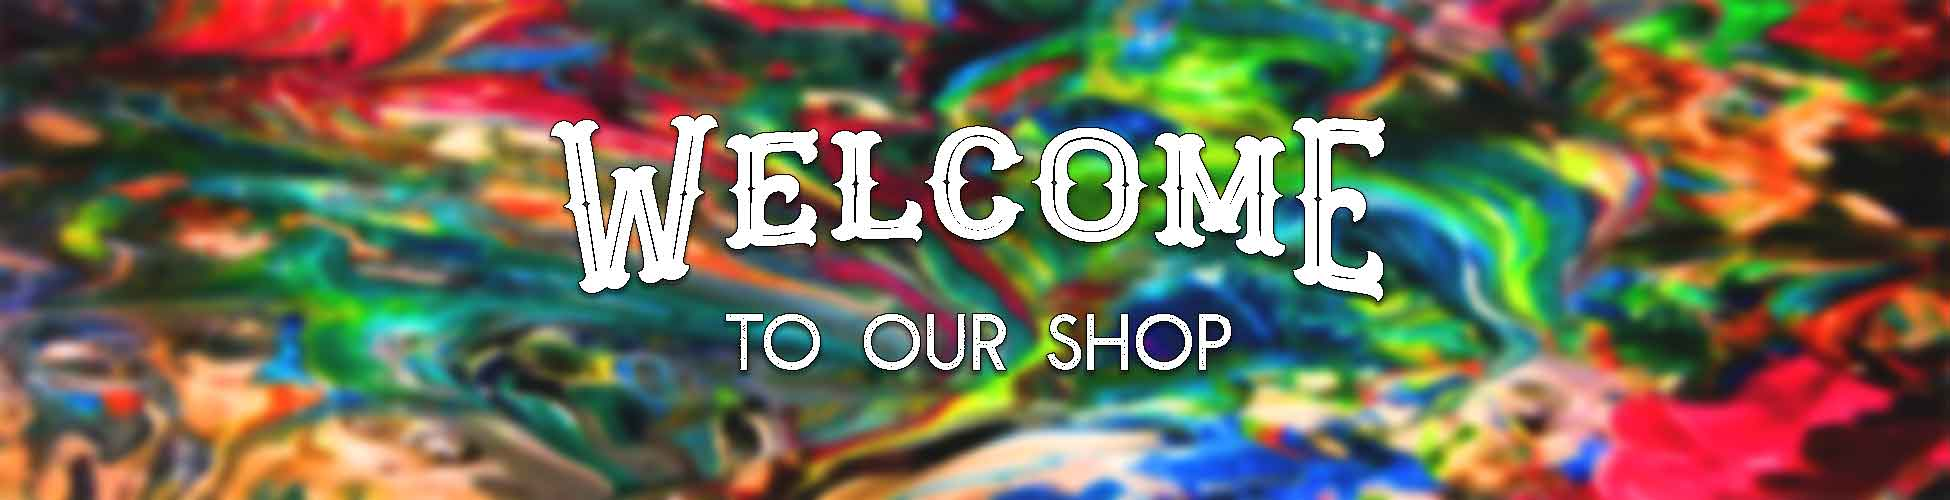 Welcome To Our Shop. Check out those funky colors!